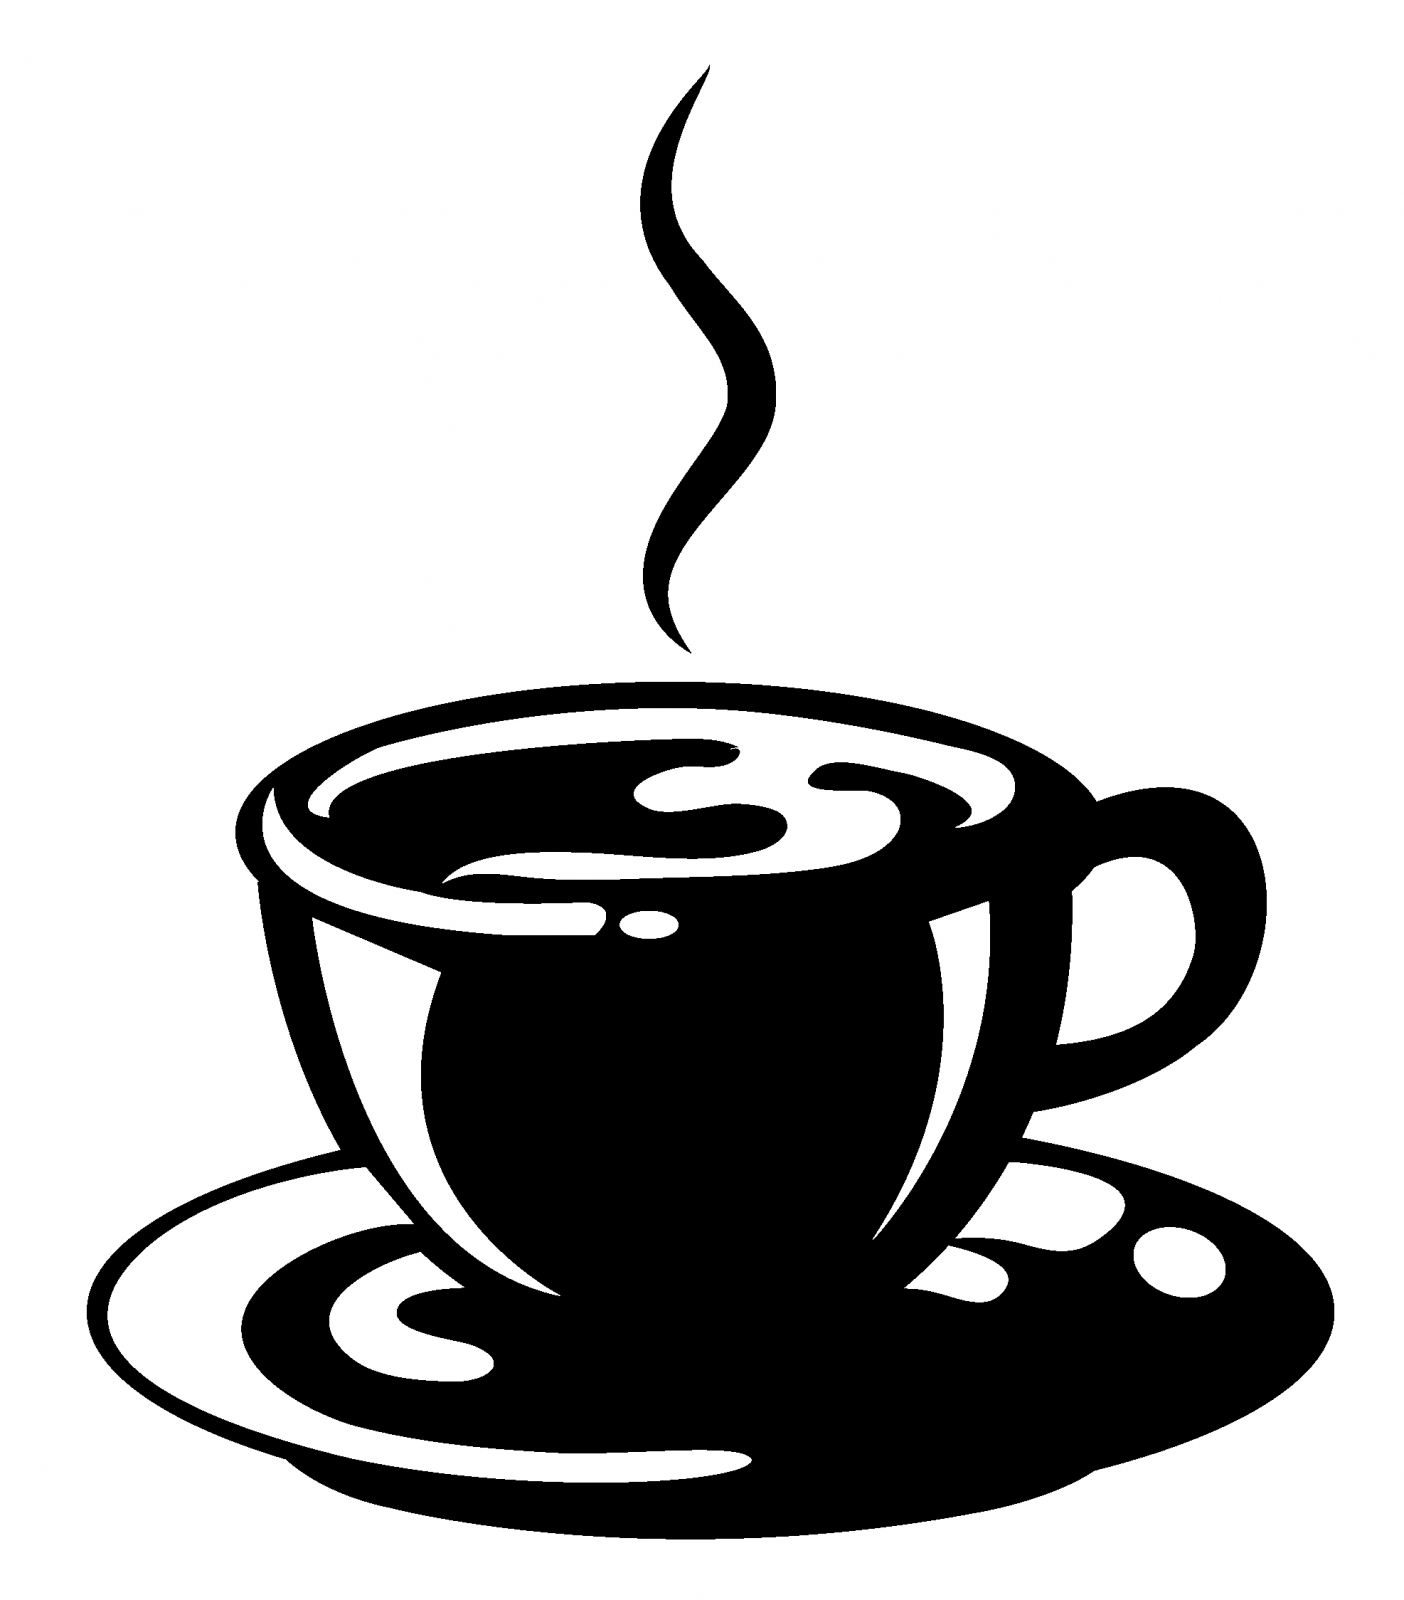 hight resolution of coffee cup clip art black white